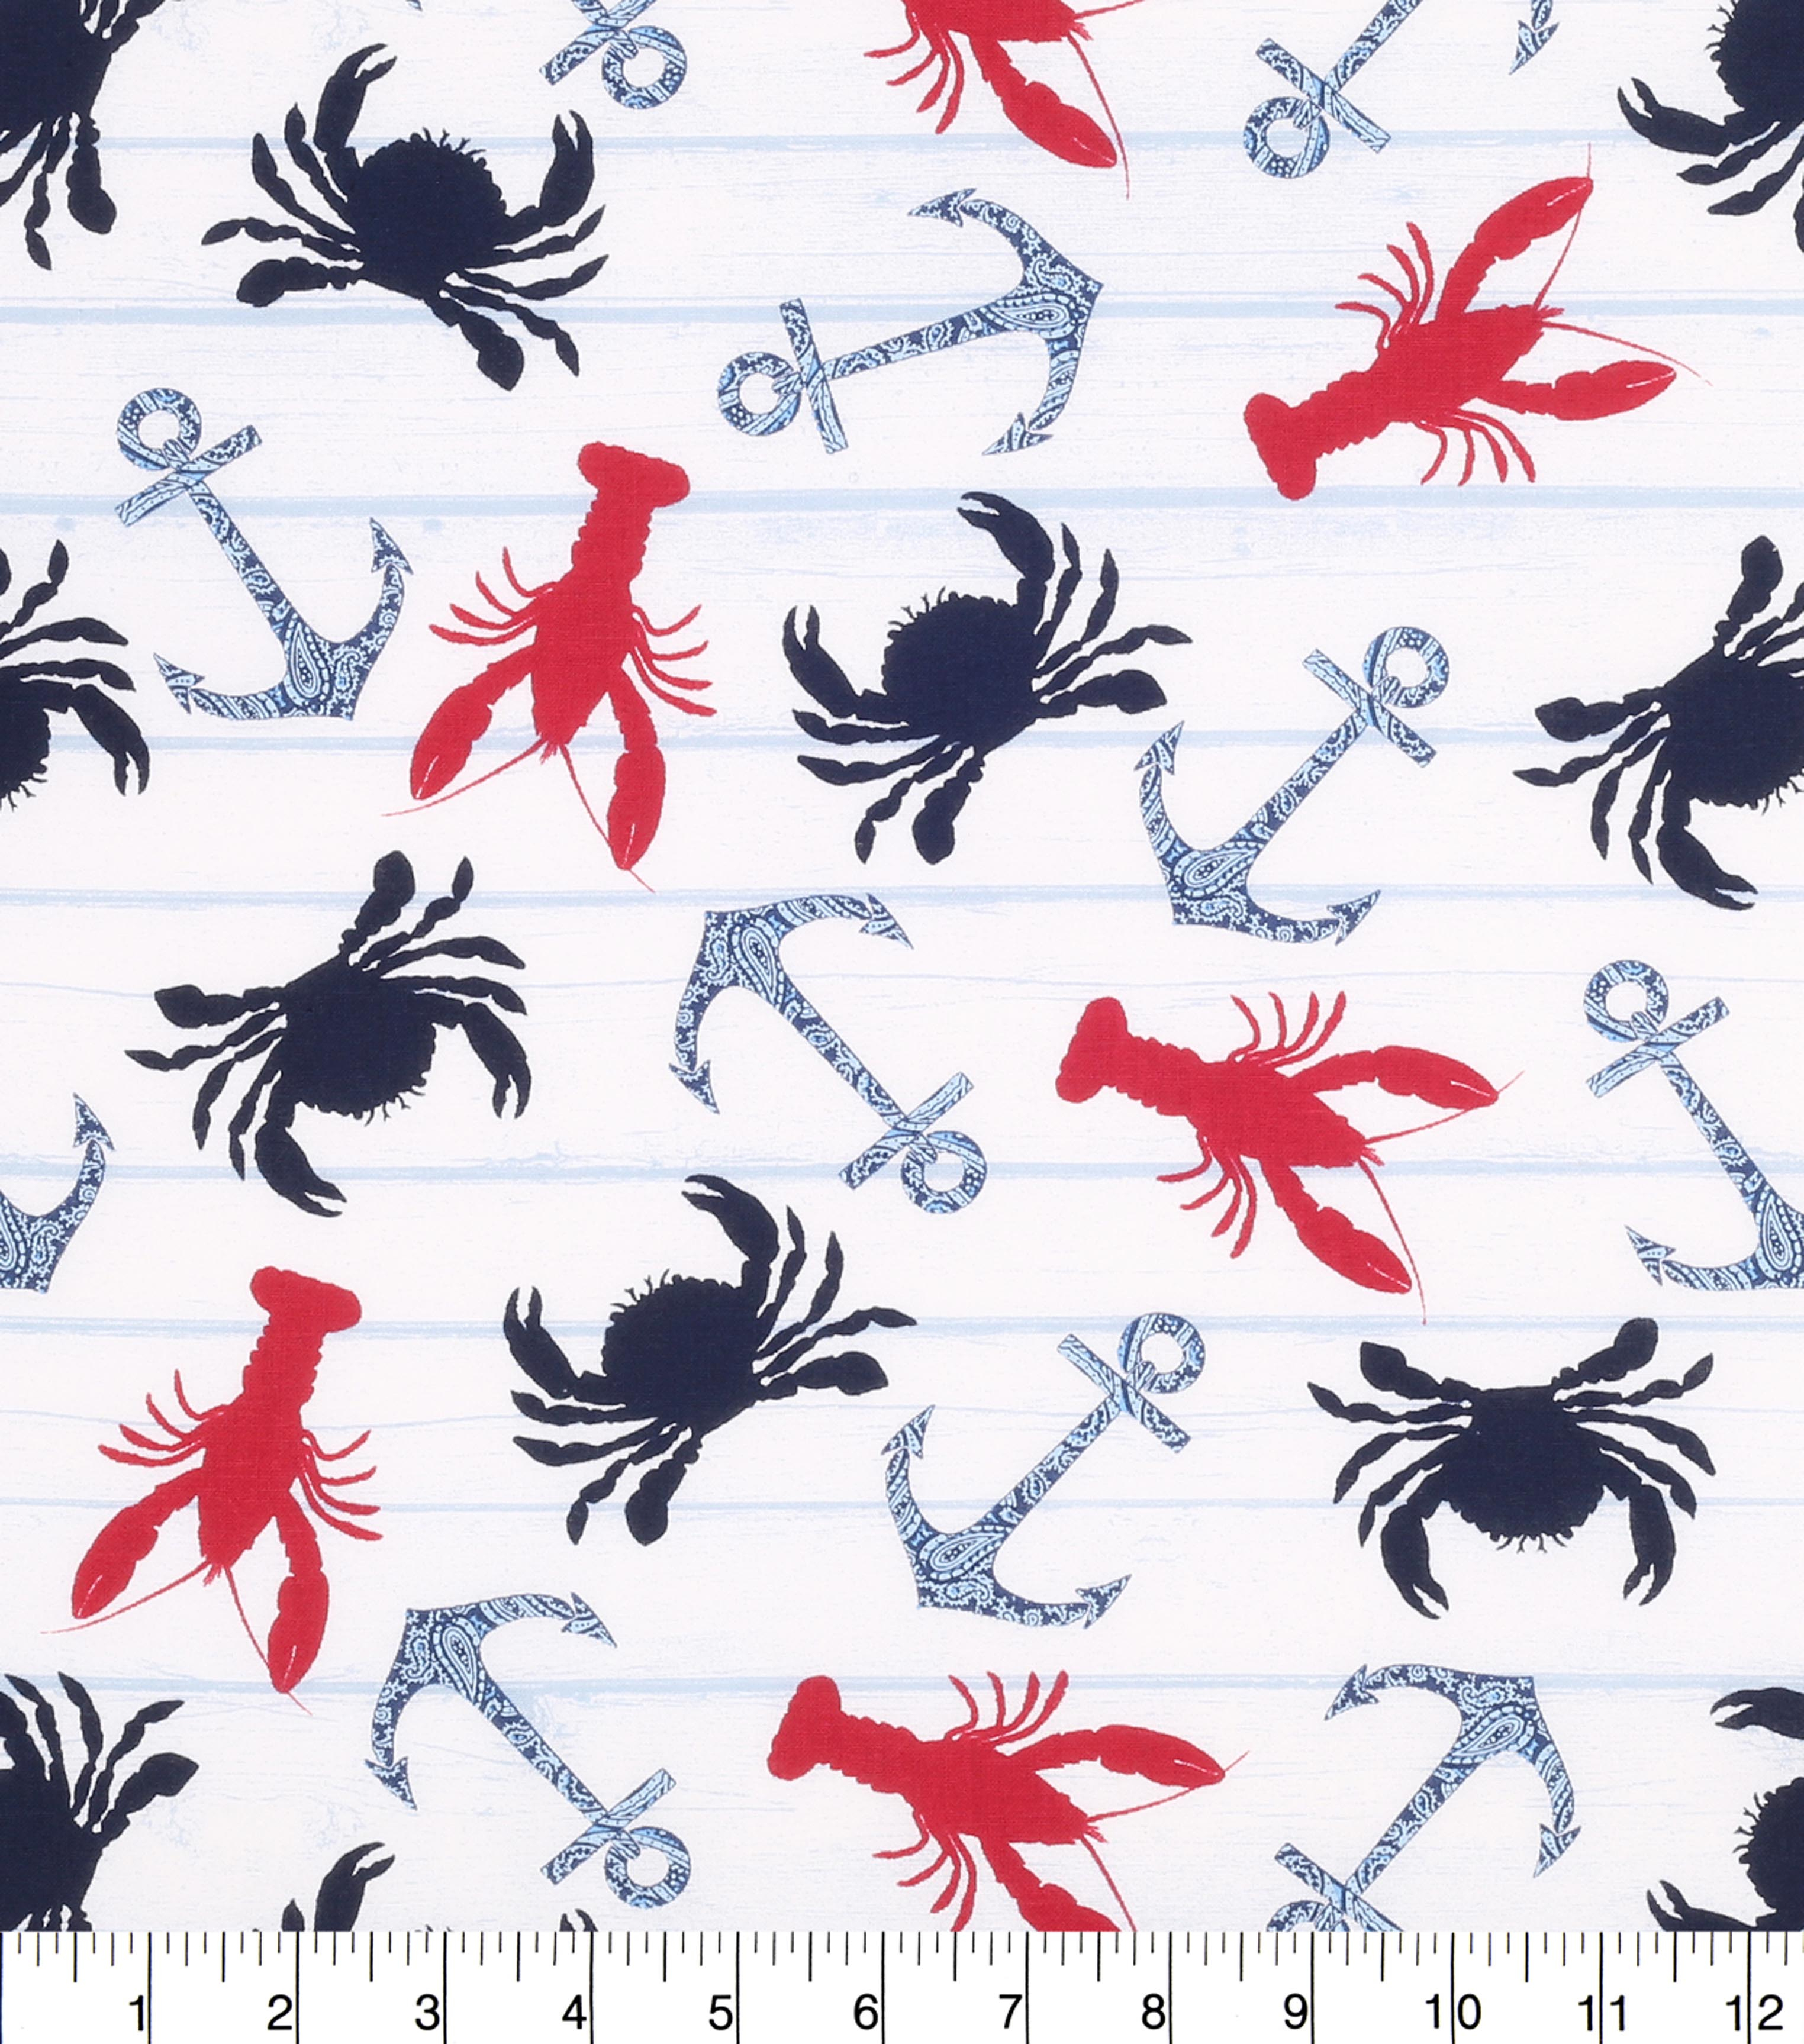 Nautical Embroidery Patterns Nautical Cotton Fabric Crab And Paisley Anchor